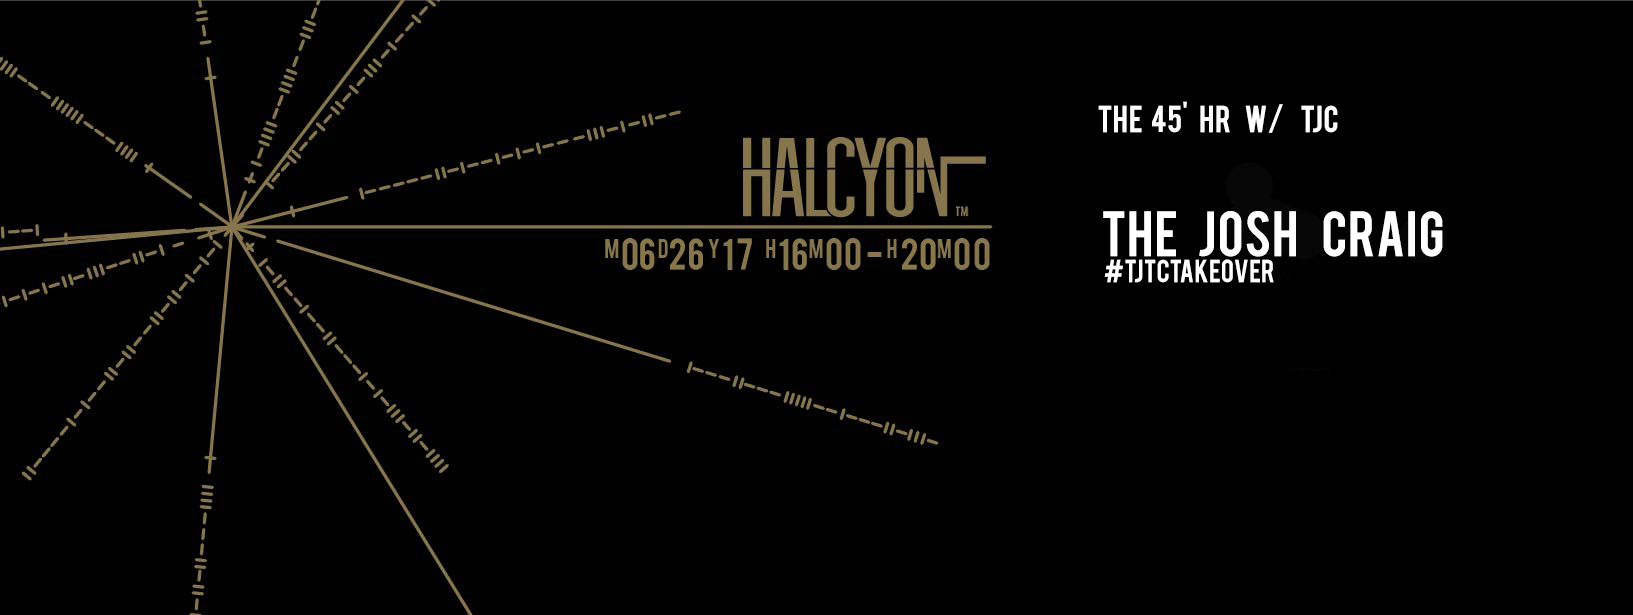 (DJ)   MONDAY 6.26.17  THE 45' HR w/ TJC  4PM @ HALCYON  FREE